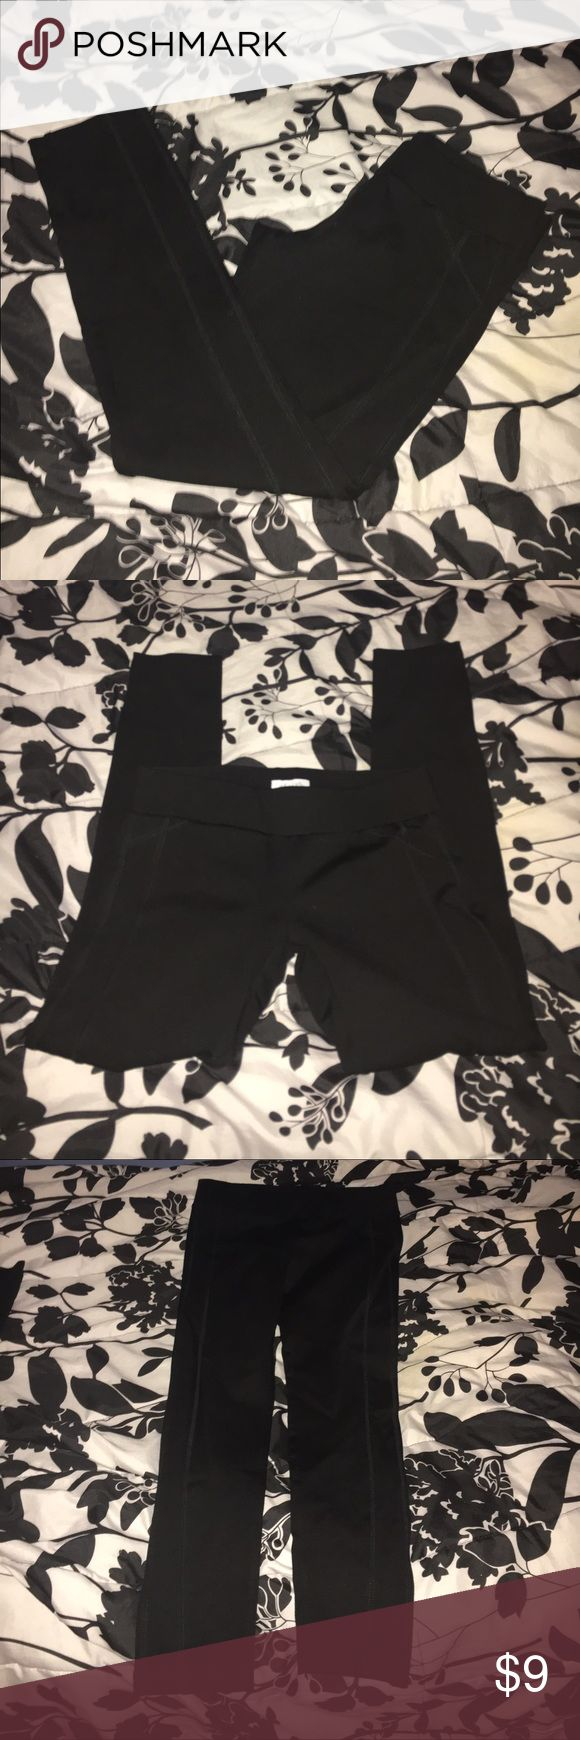 """Delia's Black leggings/pants NWOT Ordered it for someone but was way smaller than I expected it to be. Black leggings made of pretty thick material. Its not stretchy. The inside tag doesn't say size M. The shipping label sent to my email says size M, 30"""" length. It runs pretty small, even for a juniors medium. Made of 62% rayon, 33% nylon, 5% spandex. No holes or stains. Please ask if you'd like more information or pictures! Thanks! Delia's Pants Leggings"""